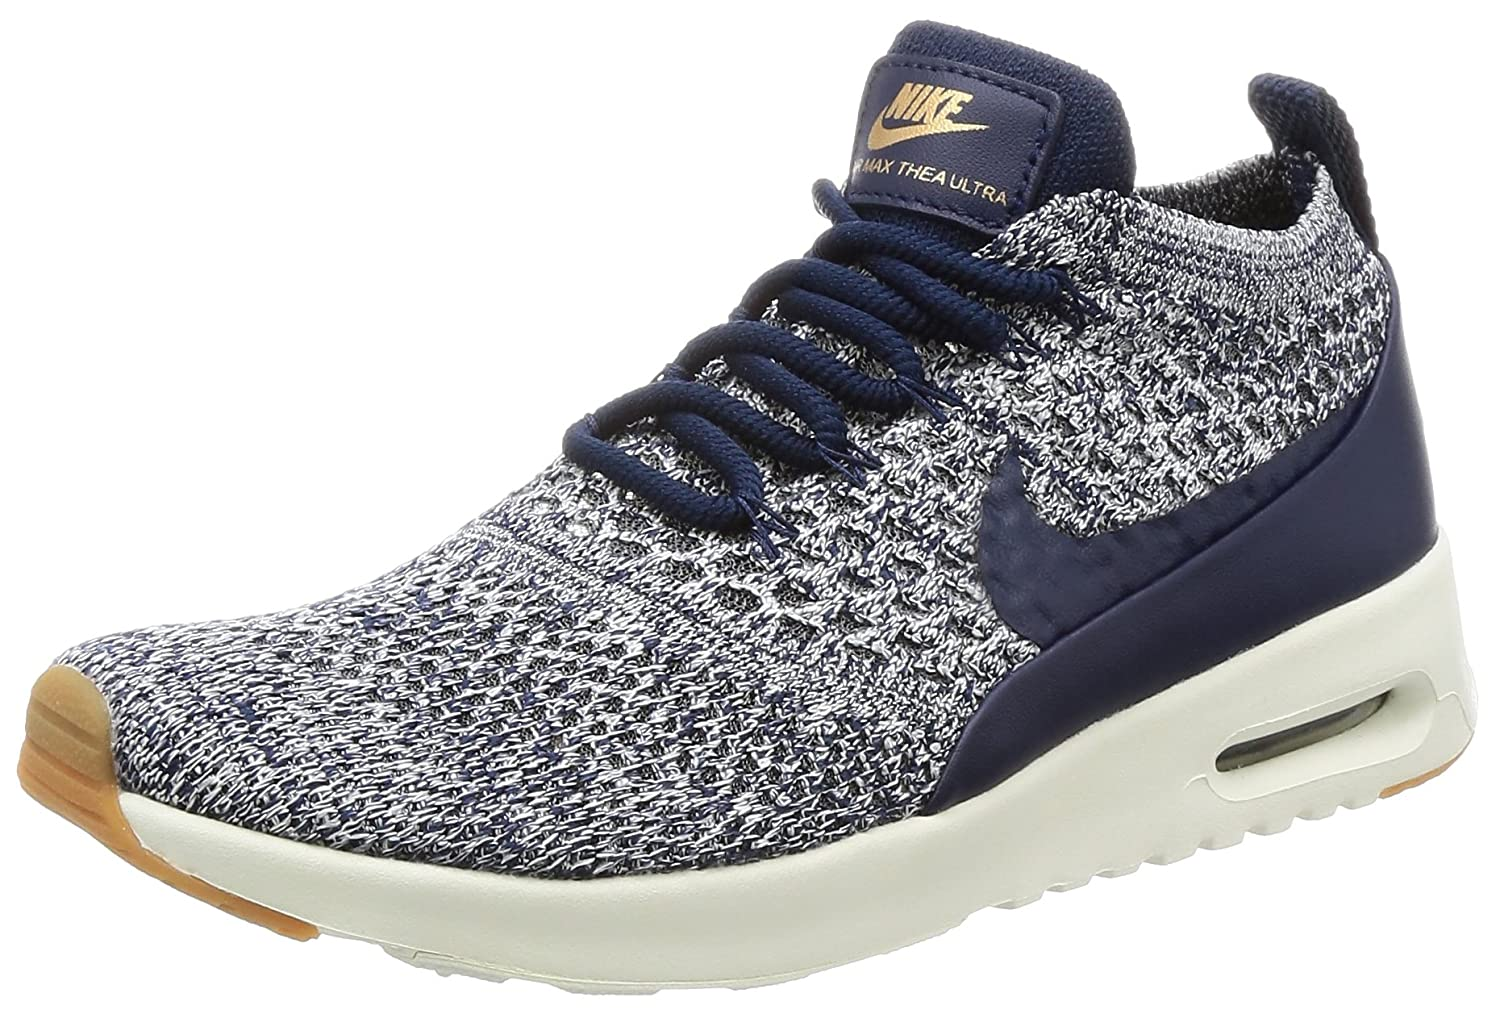 NIKE Women's Air Max Thea Ultra FK Running Shoe B0714BVRZ2 7.5 B(M) US|College Navy / College Navy-sail